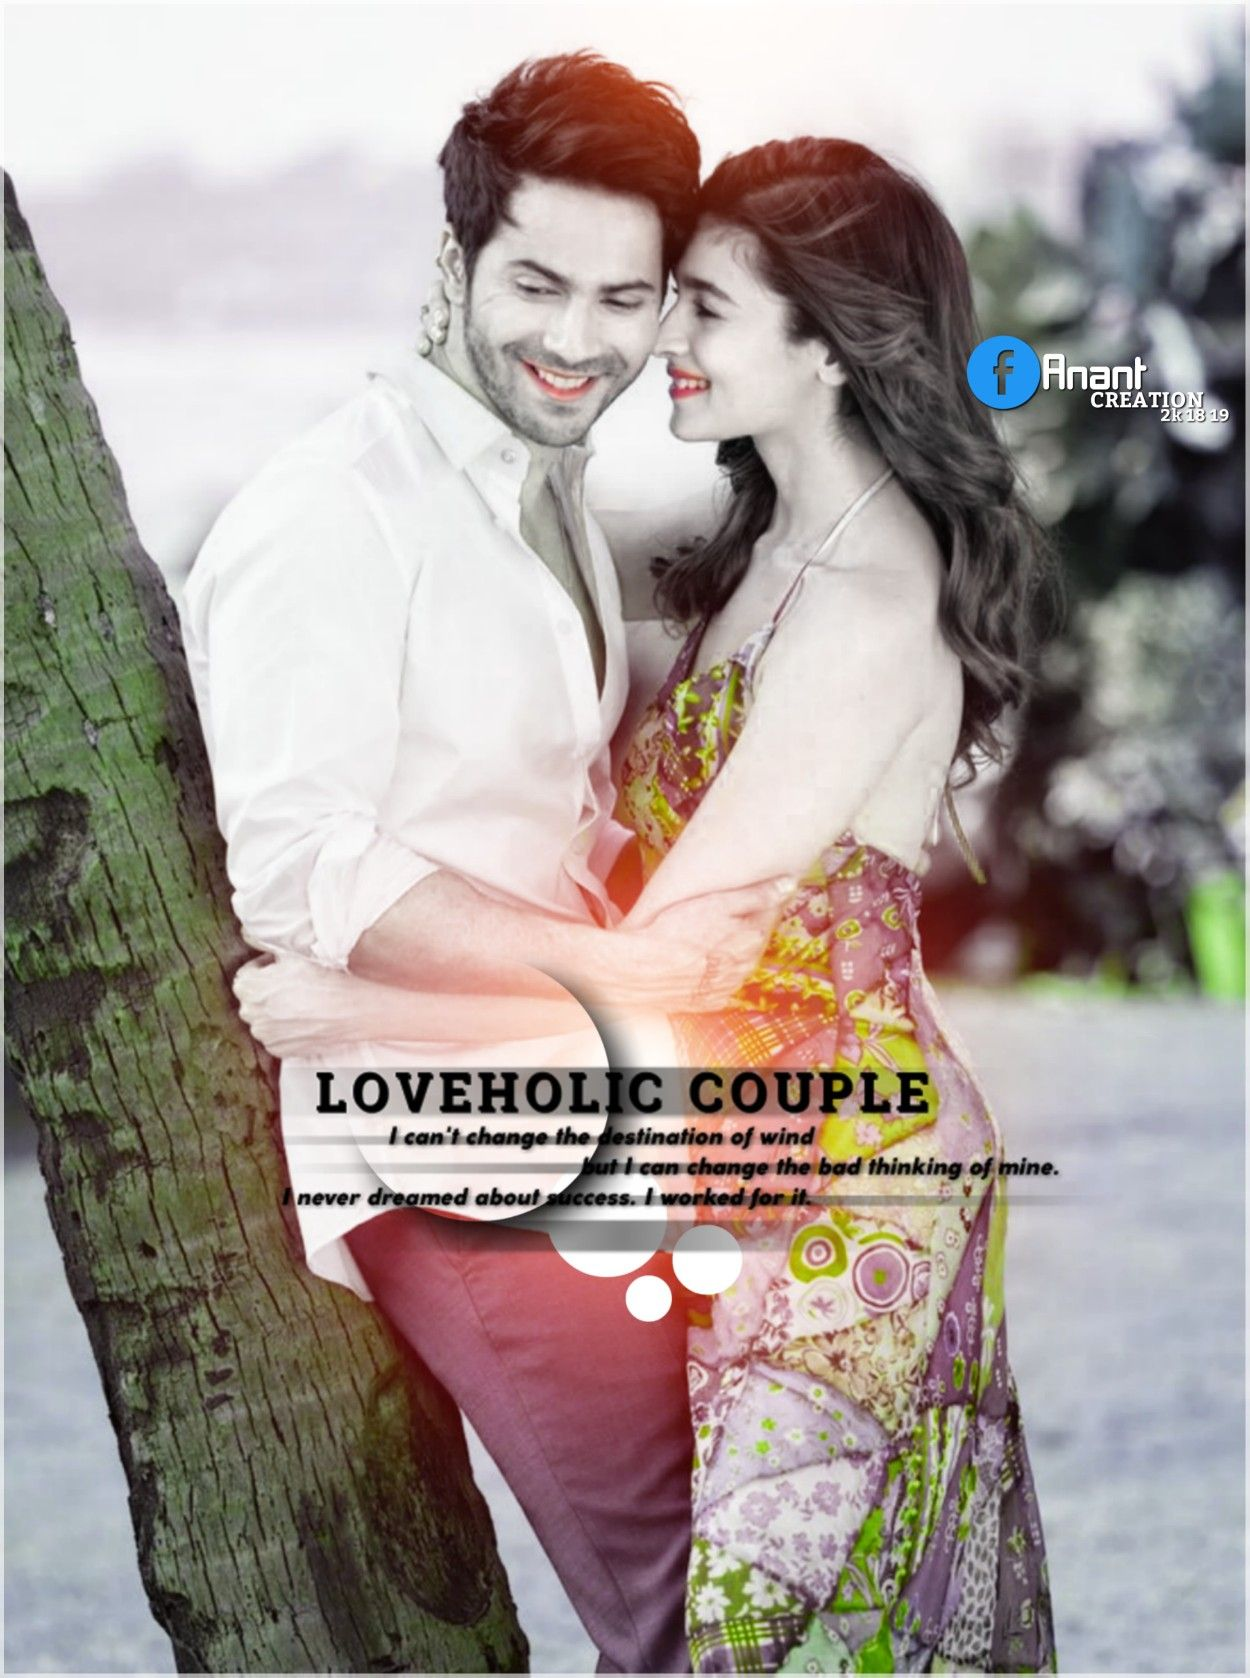 Pin By Anant Chouhan On Couple Dpz In 2019 Cute Couples Couple